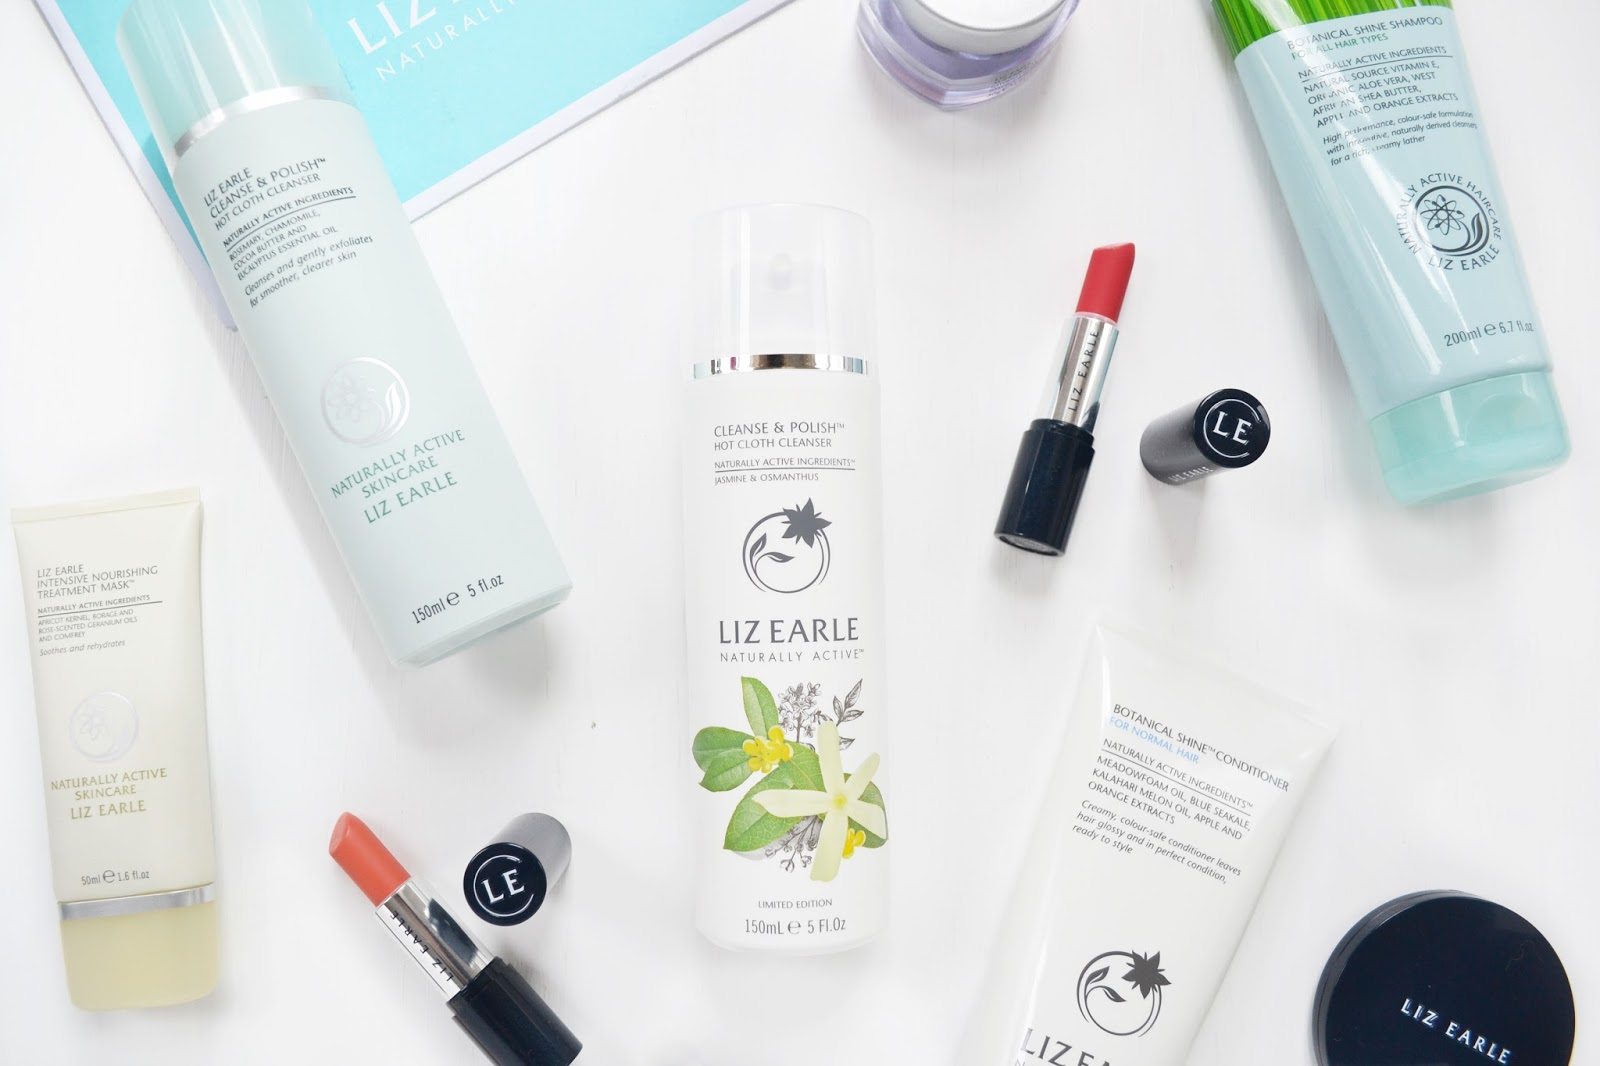 Liz Earle Jasmine and Osmanthus Cleanse & Polish